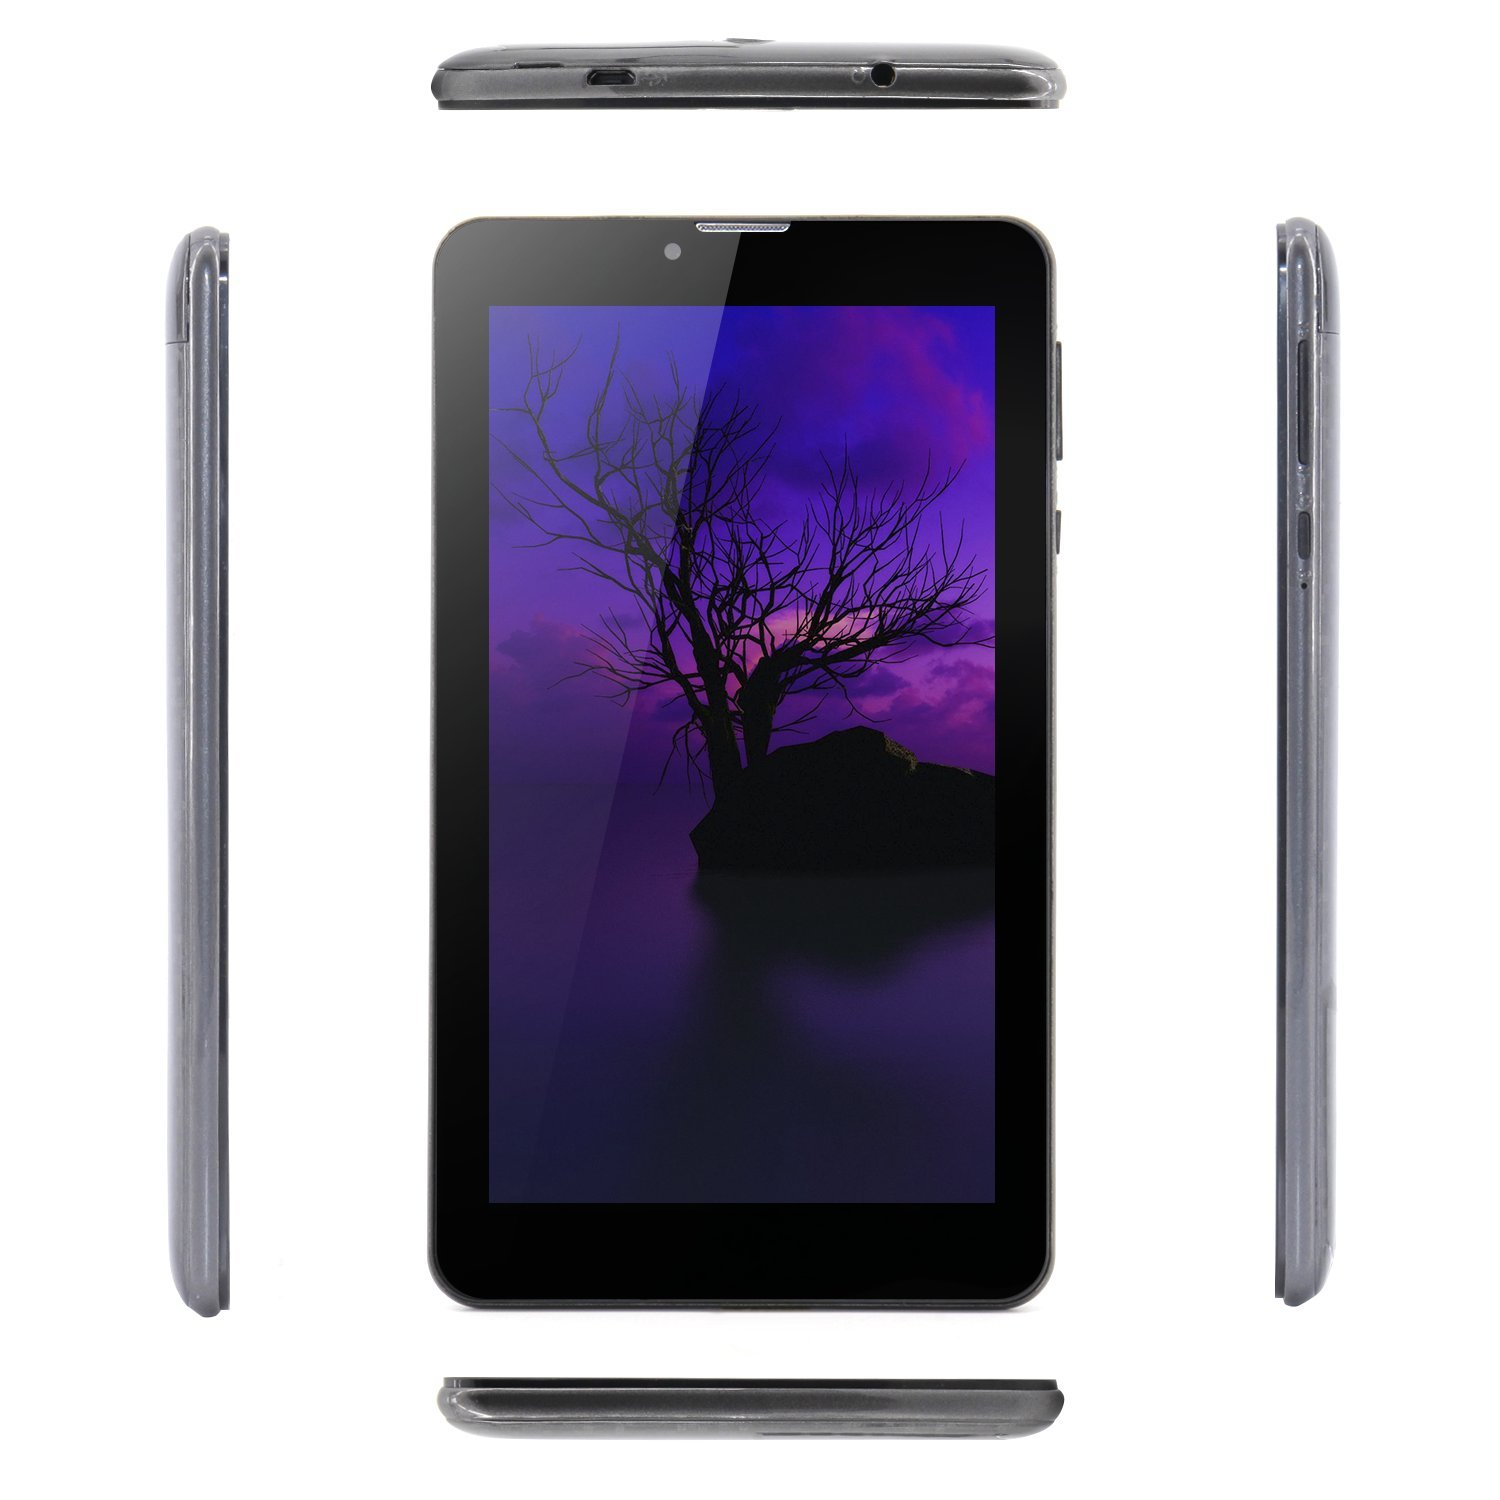 Tablet Android 7 Inch with Sim Card Slots 1GB RAM 8GB ROM MTK8321 Cortex A7 Quad-core 1.3Ghz IPS Screen 600×1024 Dual Camera 3G Unlocked GSM Phone Tablet PC with WiFi,GPS - Grey by Winsing (Image #2)